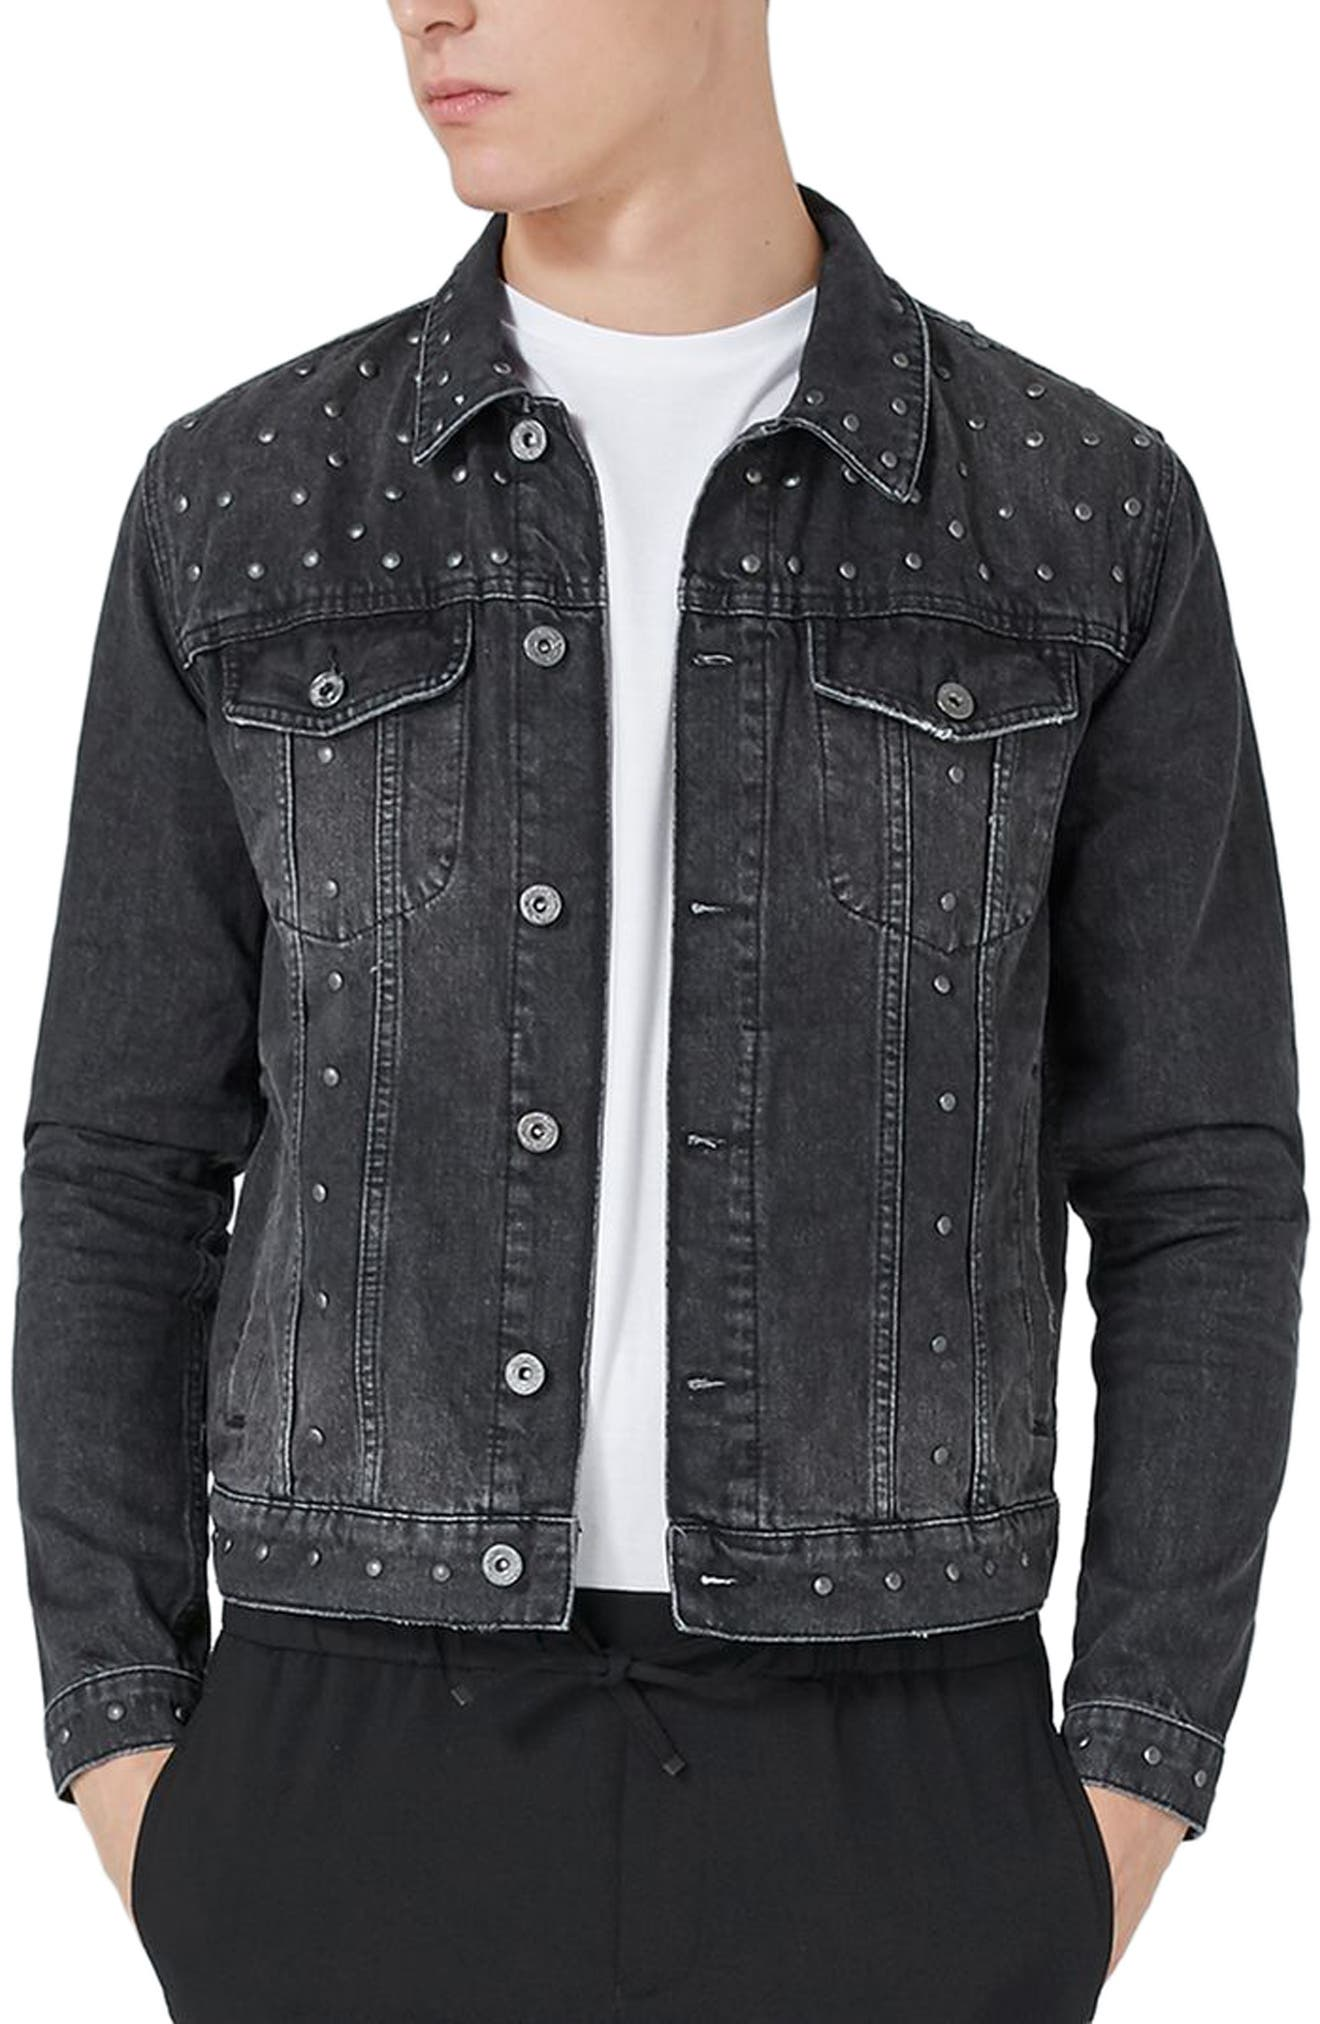 Main Image - Topman Studded Denim Jacket